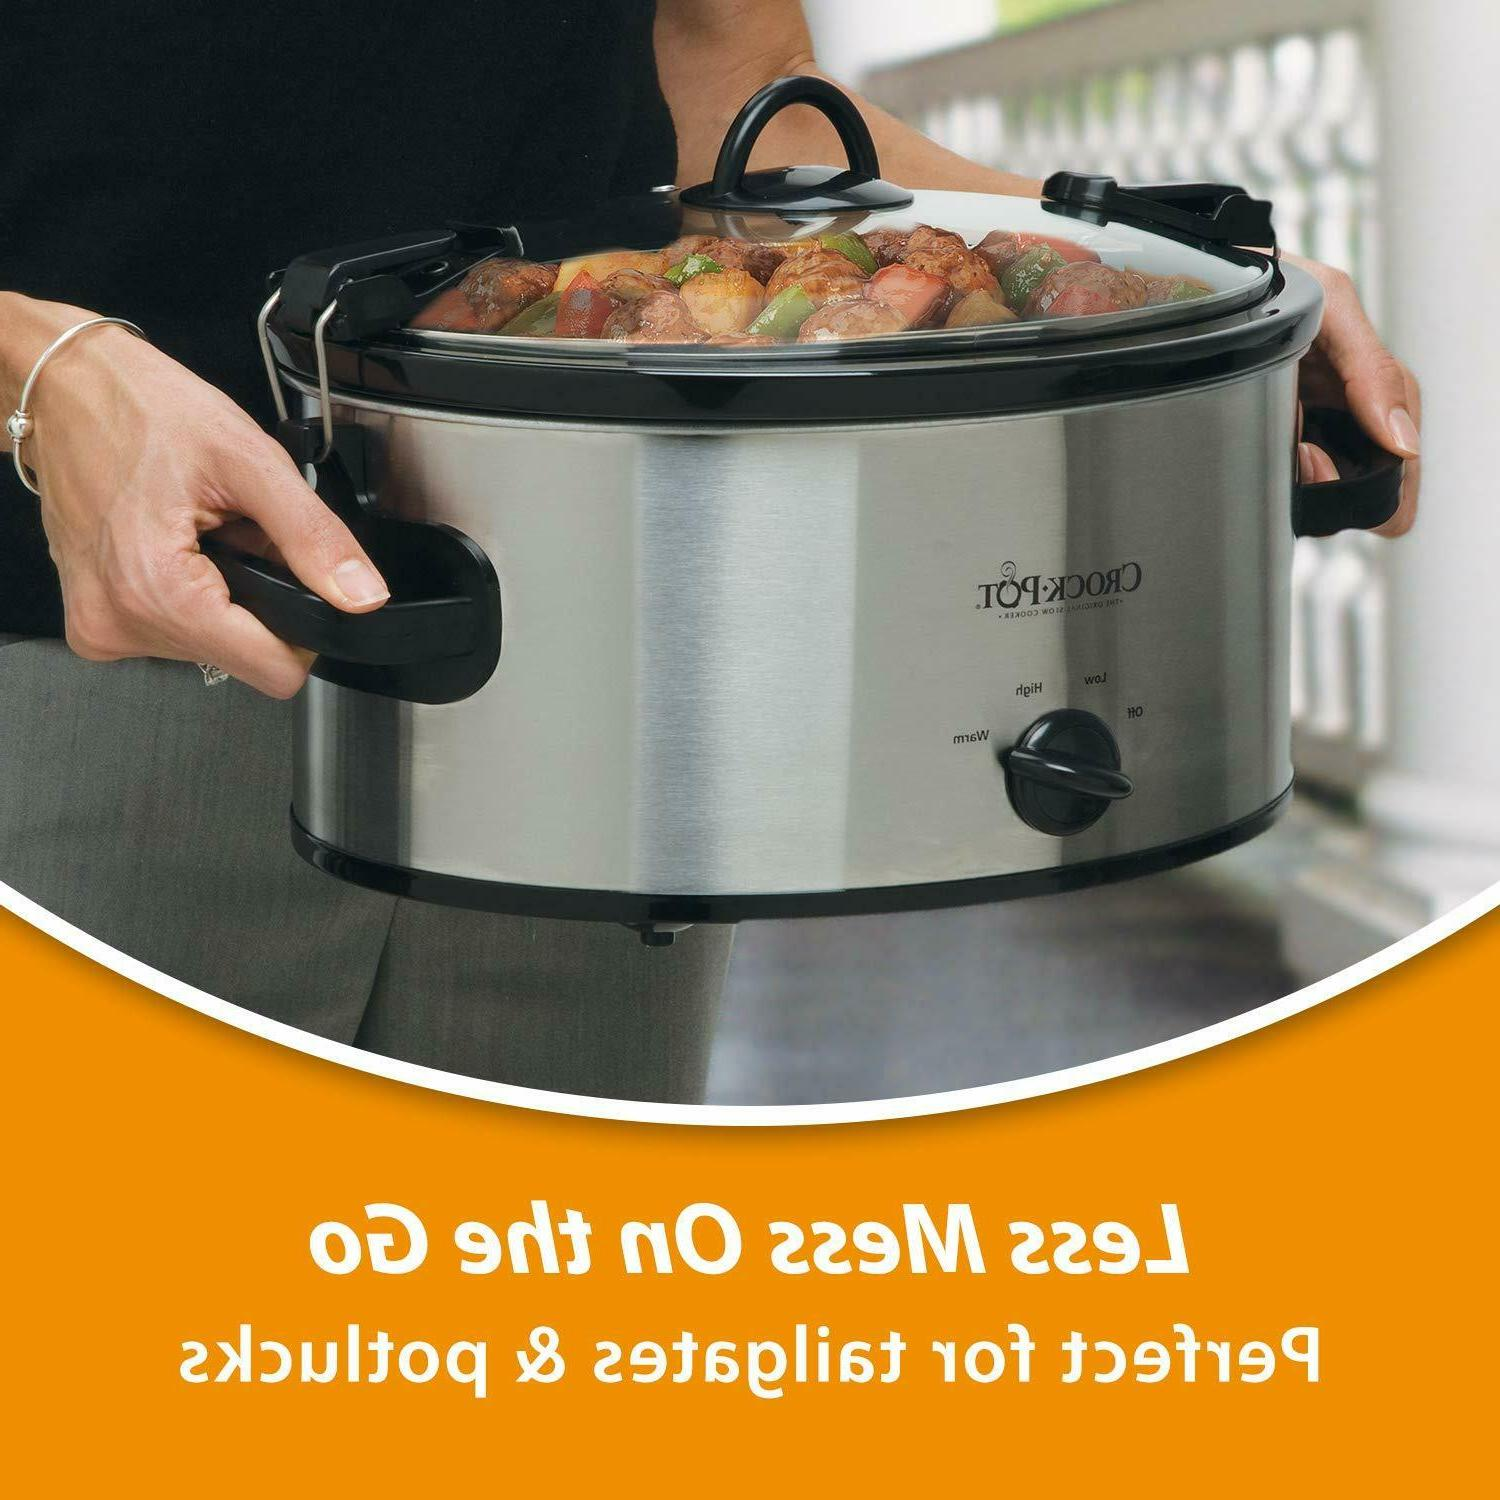 Crock-Pot Cook 6-Quart Oval Manual Slow